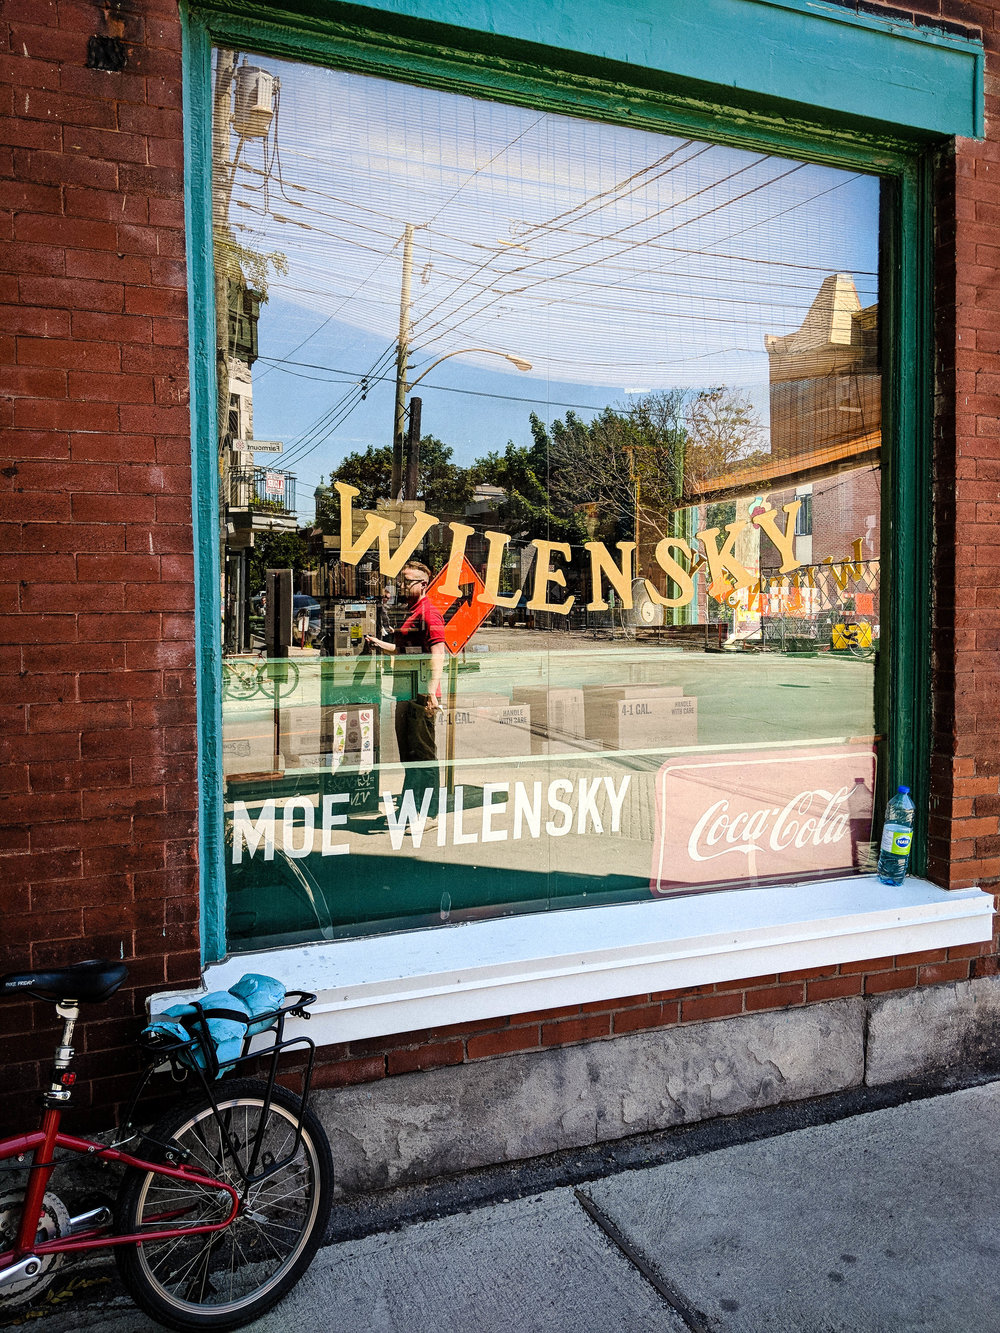 Wilensky famous food in Montreal. 10 must-eat food in Montreal